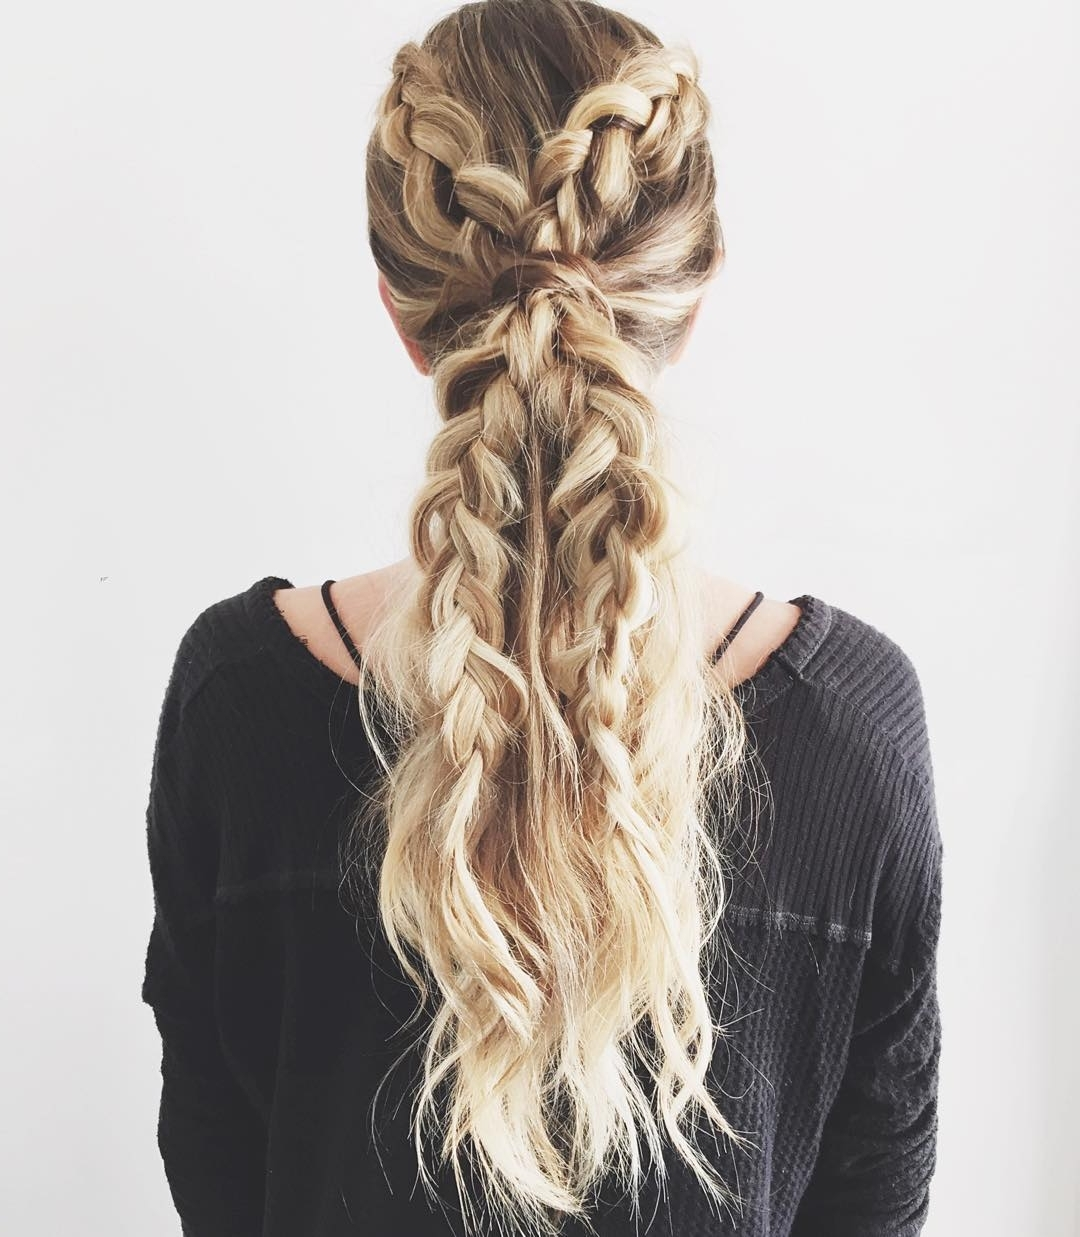 30 Braided Ponytail Hairstyles To Slay In  (View 7 of 20)